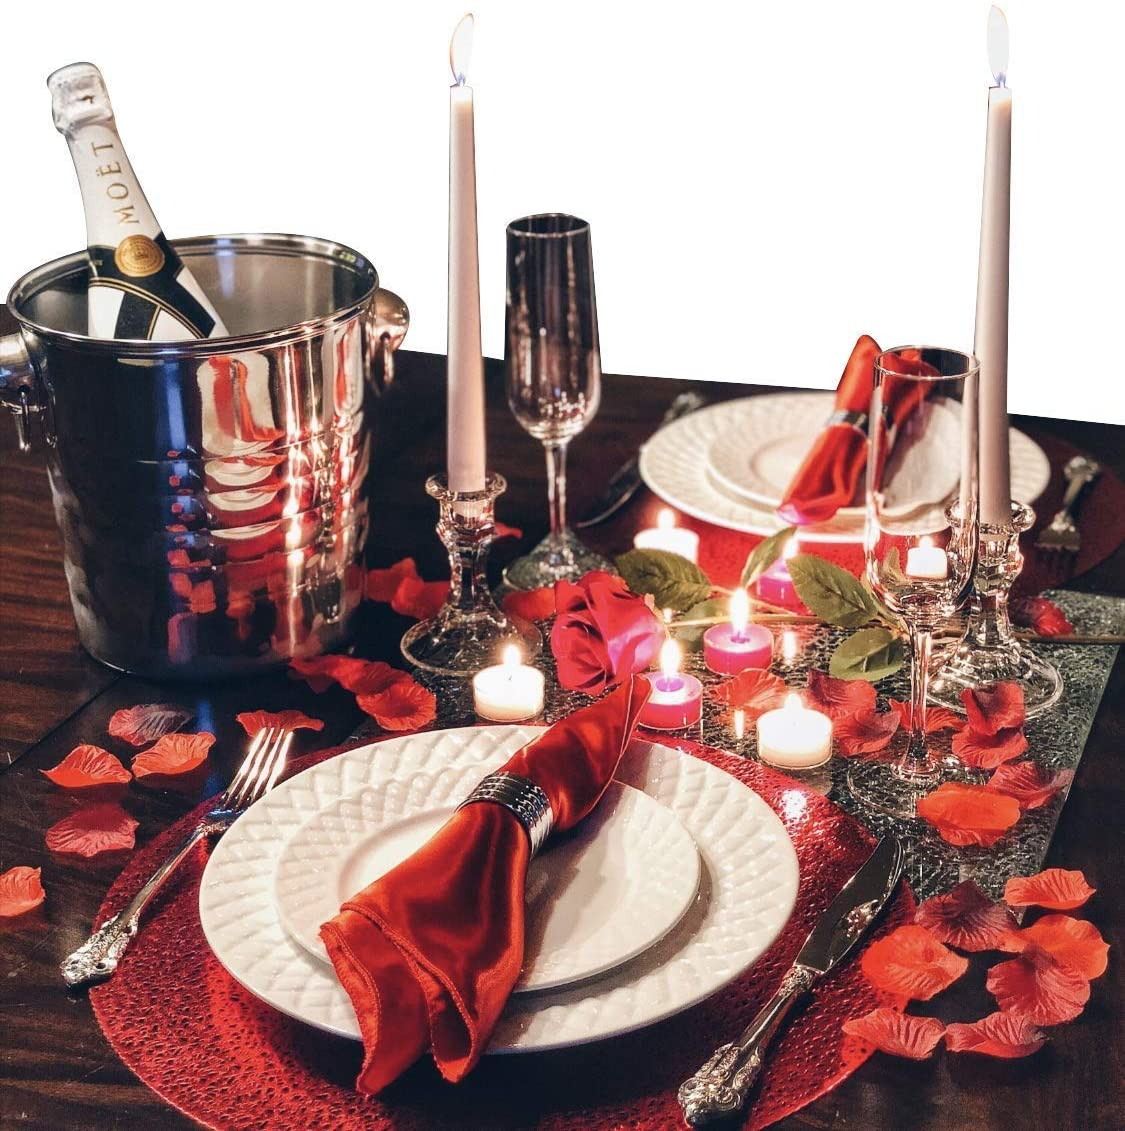 Amazon Com Romantic Dinner Set For Two Romantic Decorations Special Night Romantic Candles Rose Petals And Plates Kitchen Dining